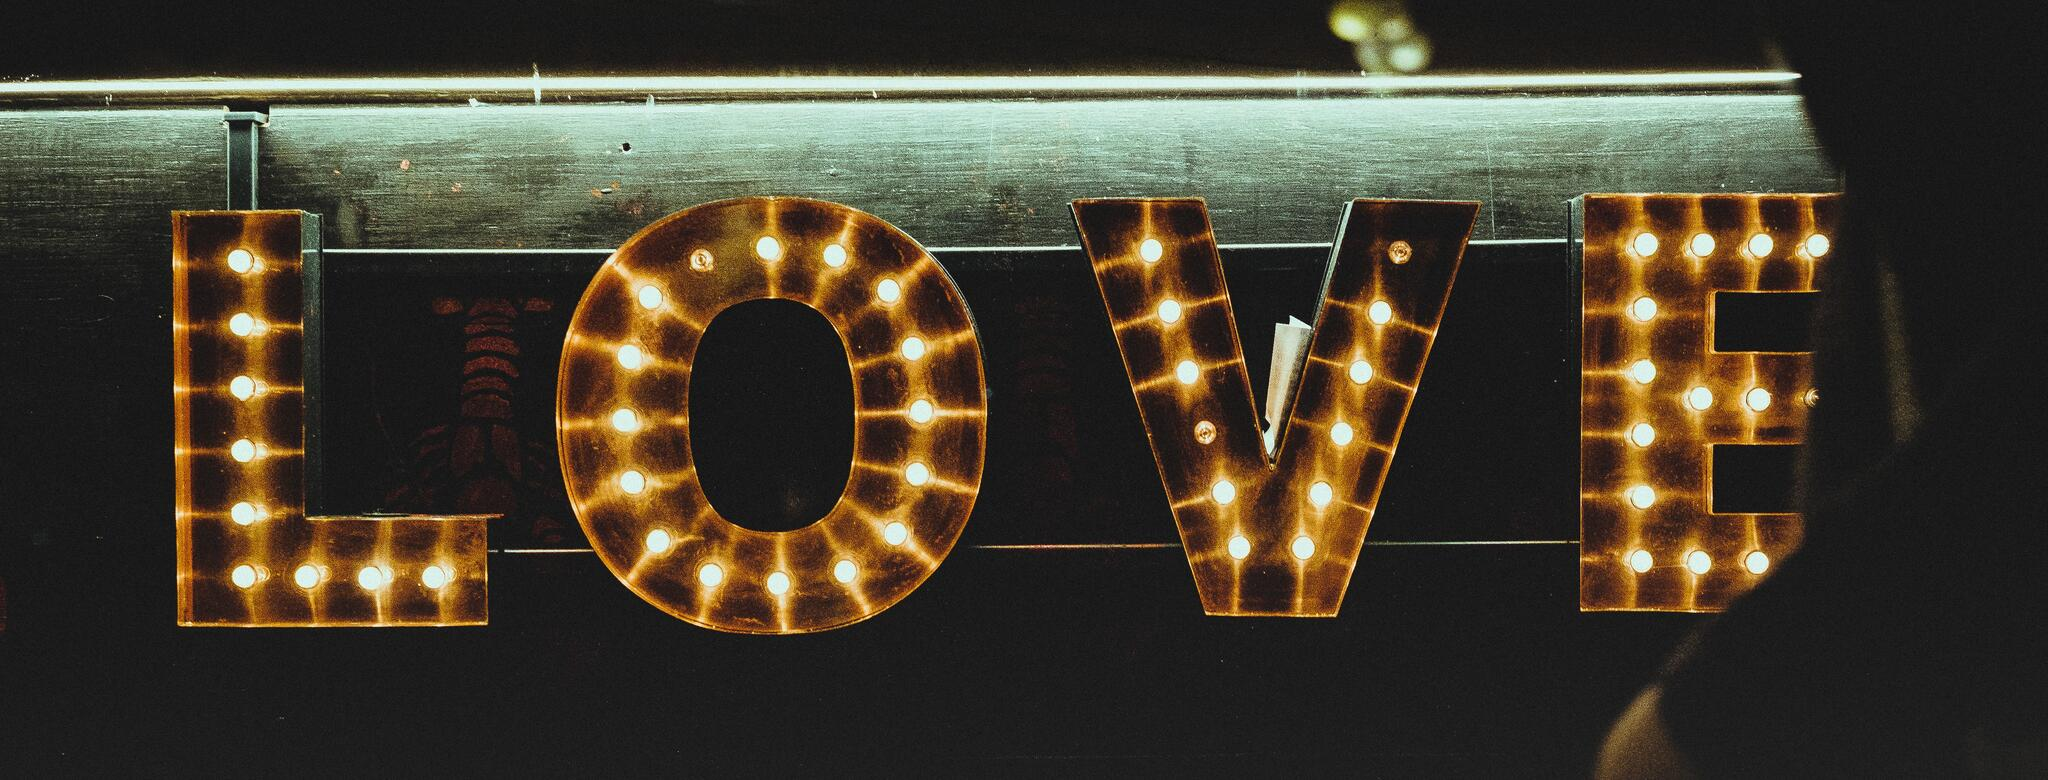 LOVE sign in lights